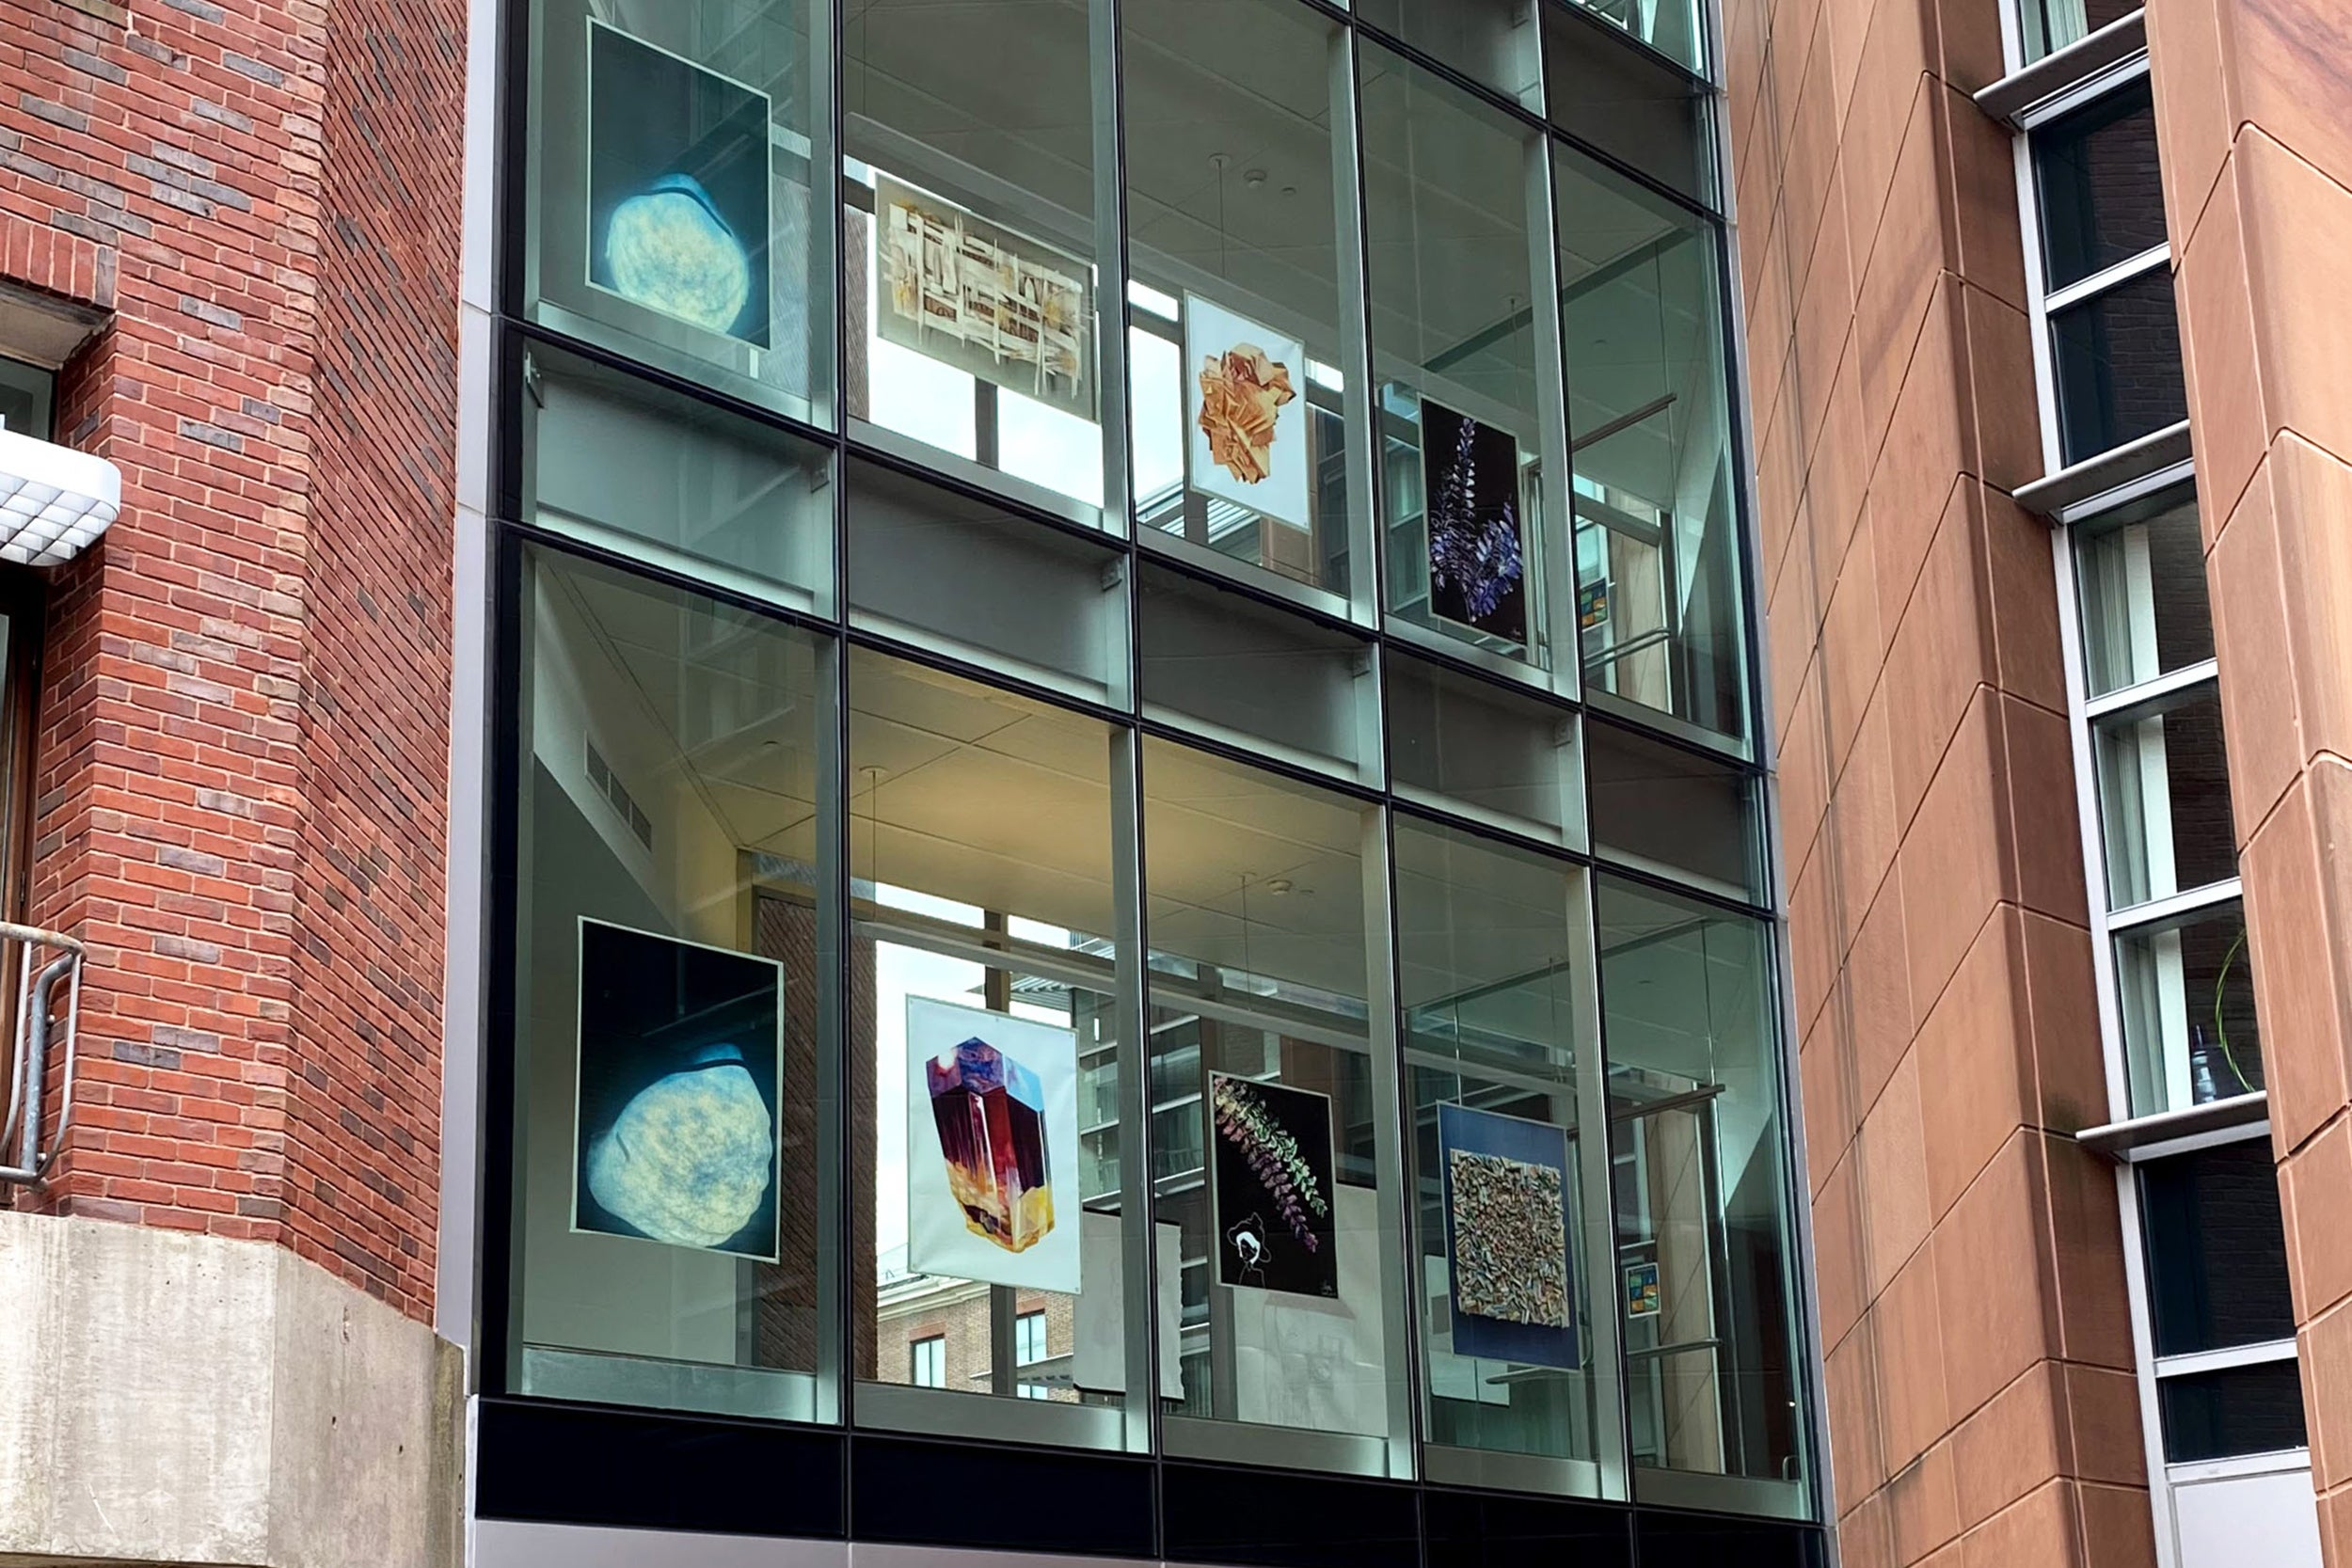 Artwork in the windows of Harvard buildings.